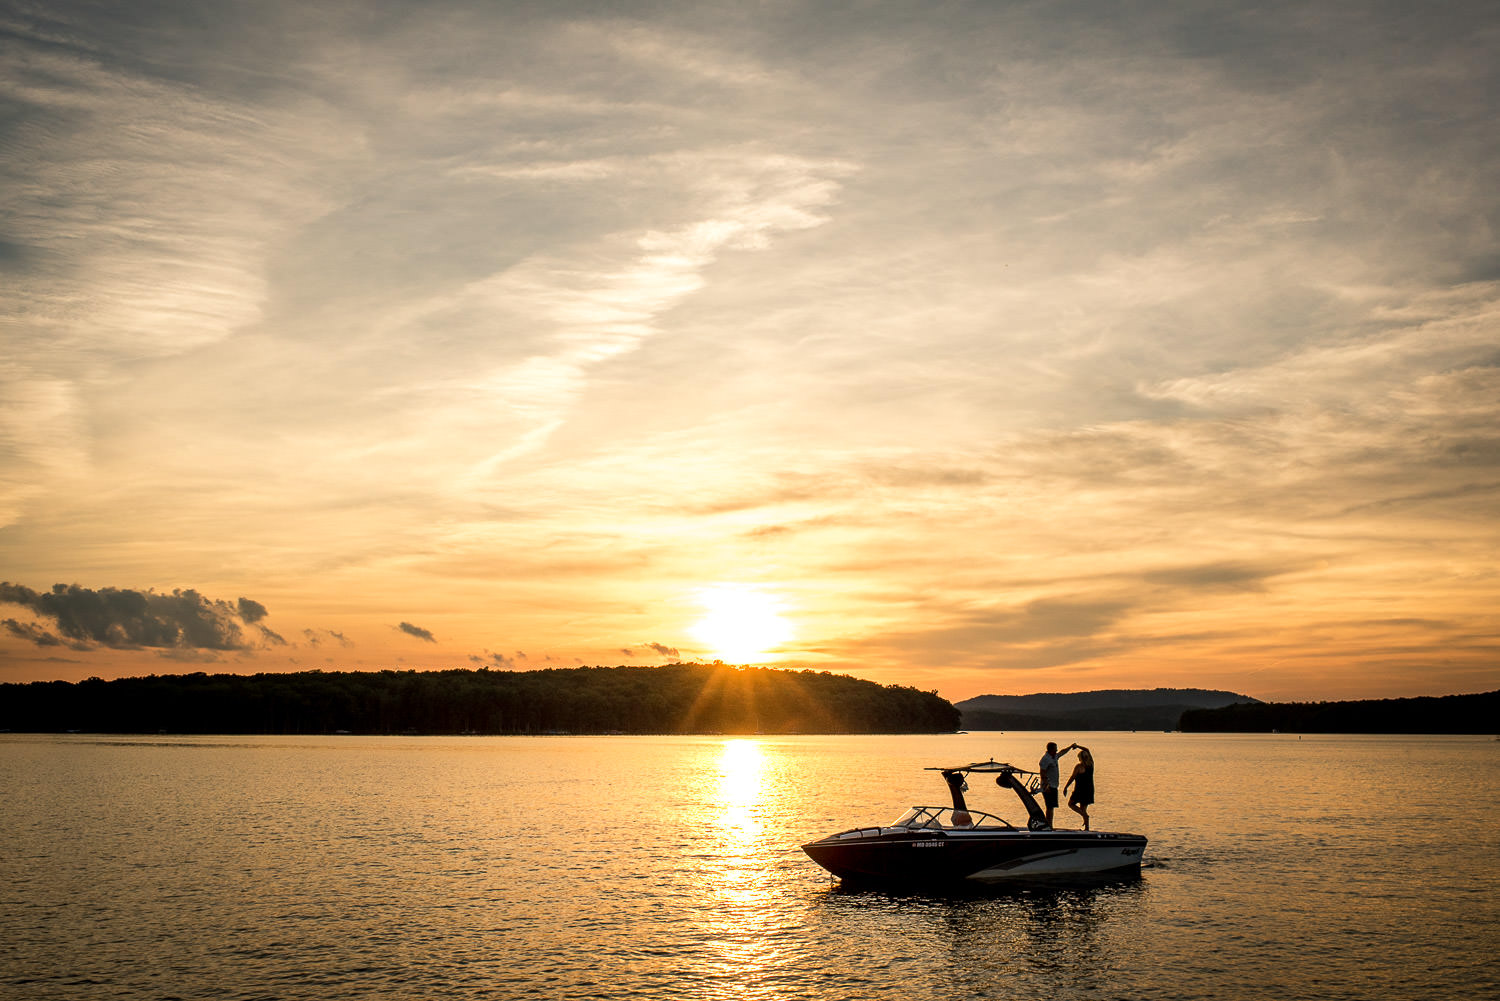 sunset engagement session on boat at Deep Creek Lake, Maryland